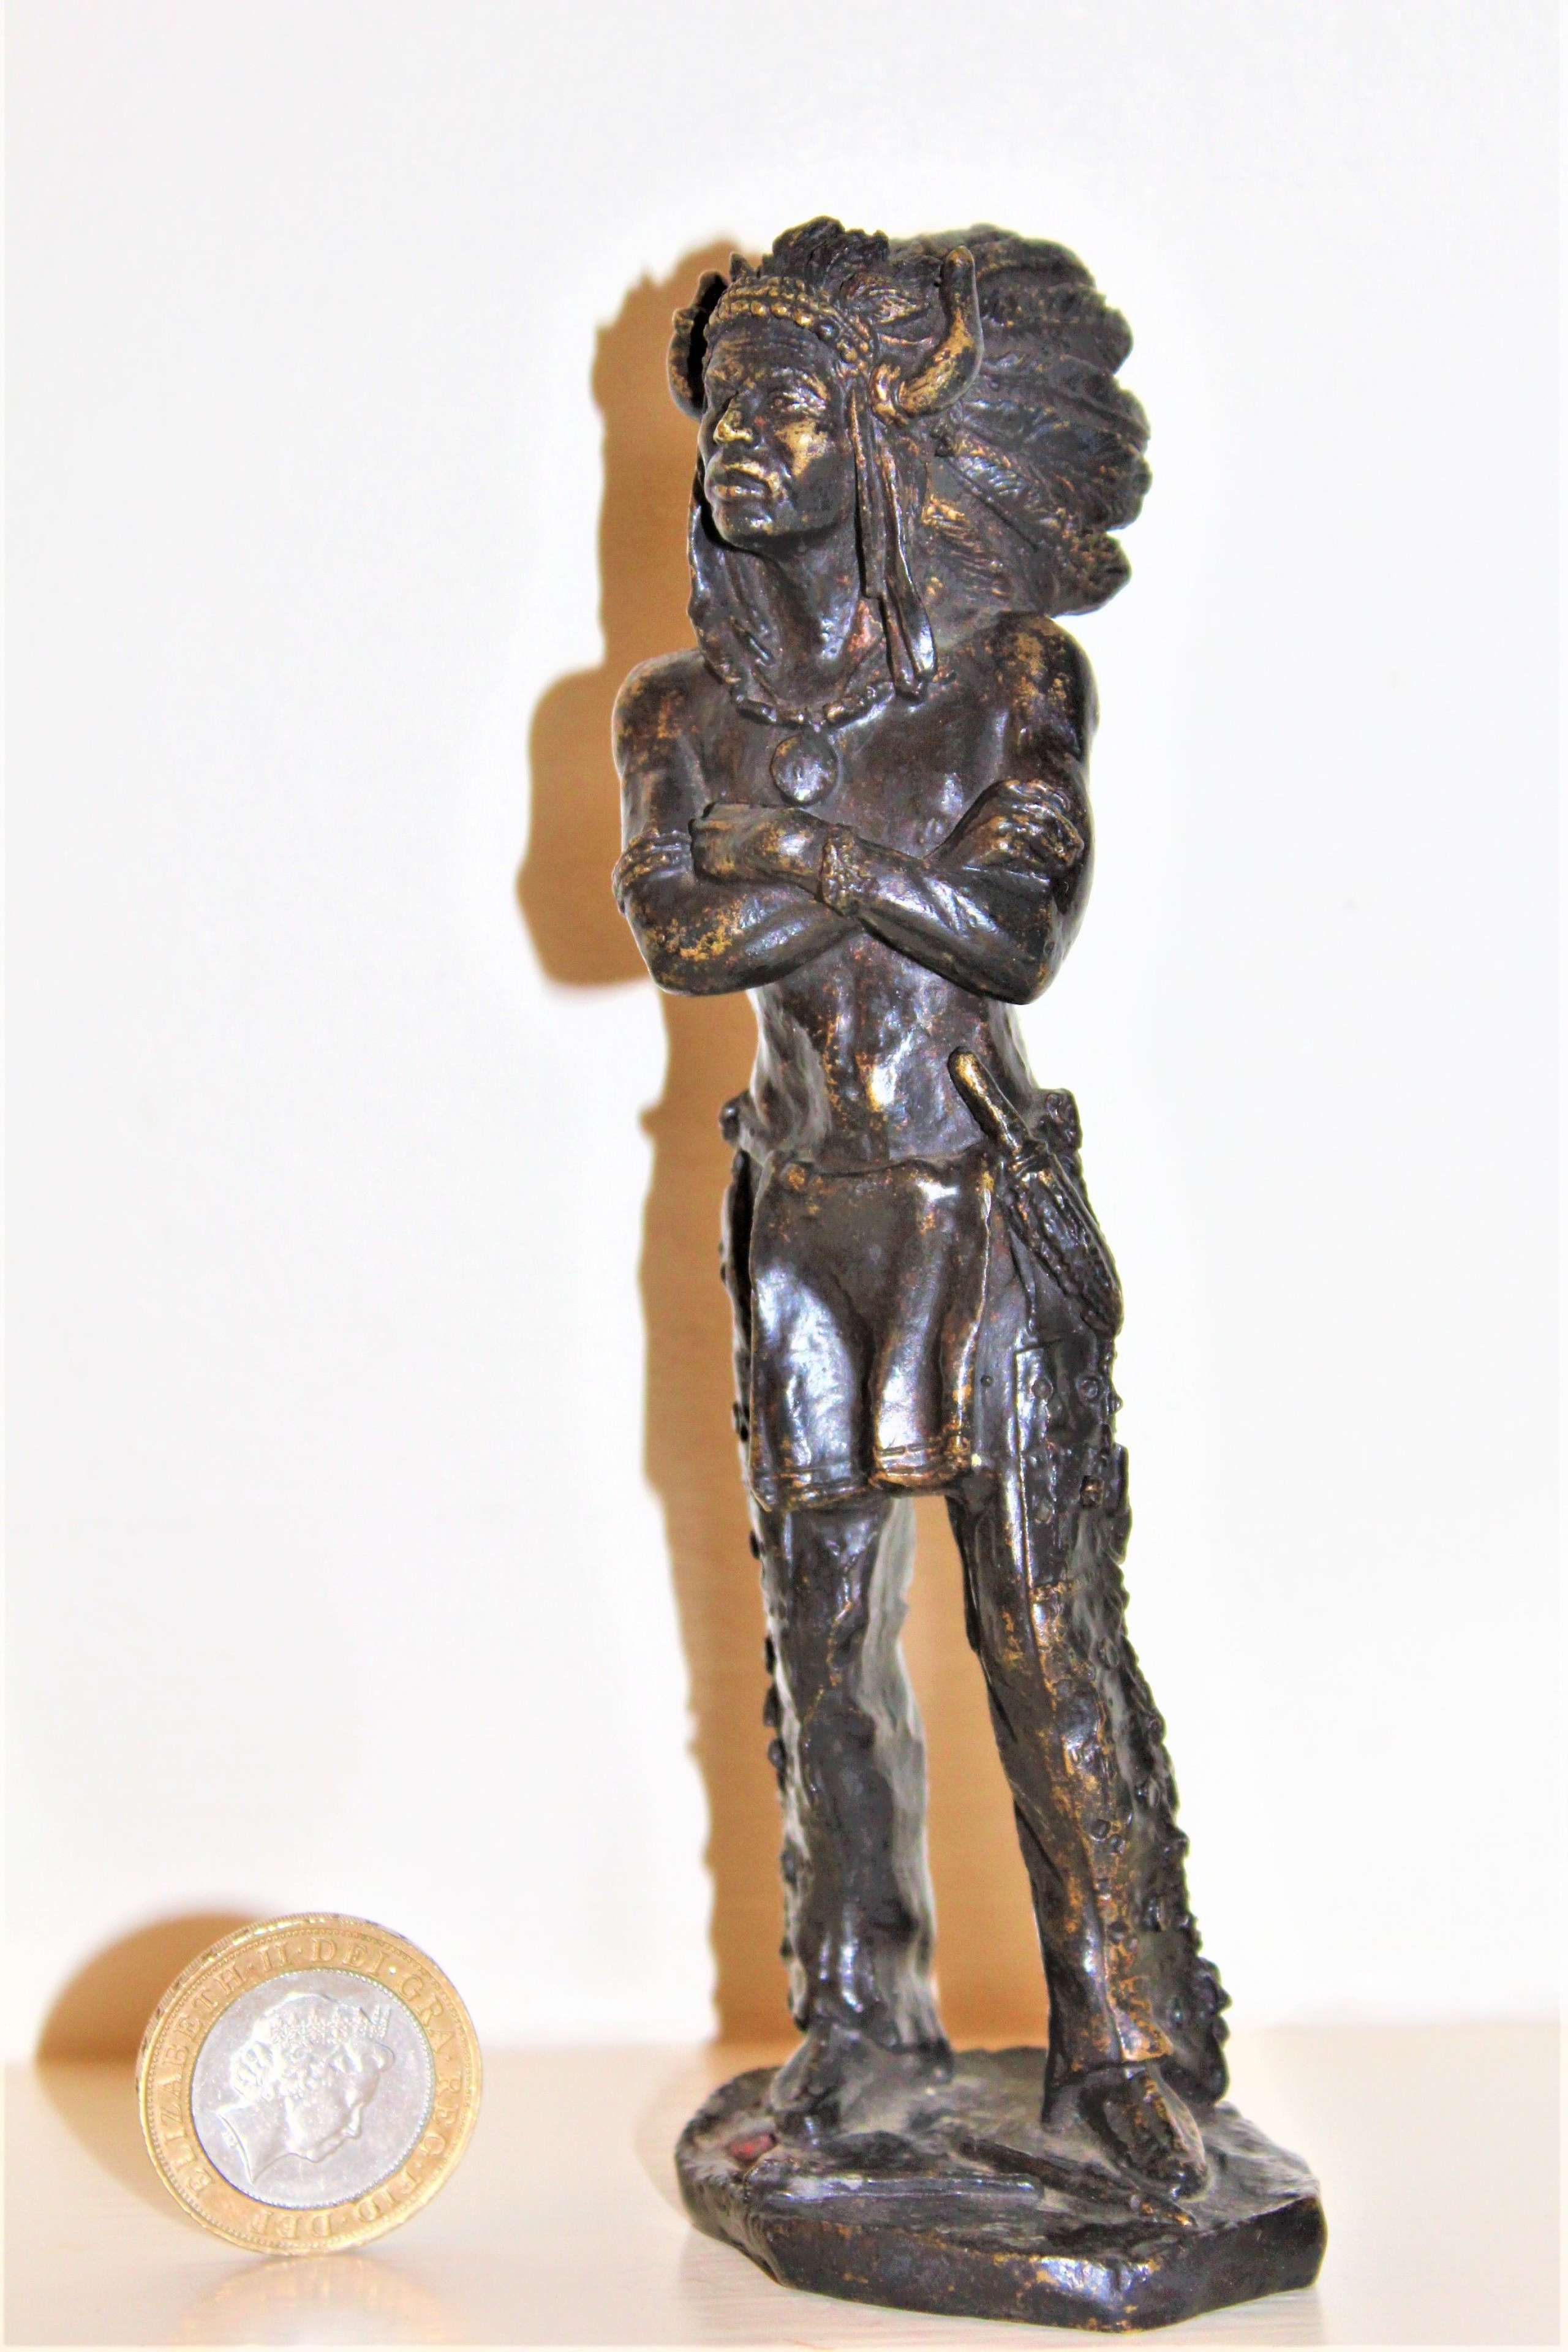 A well cast bronze figure of a red Indian possibly French